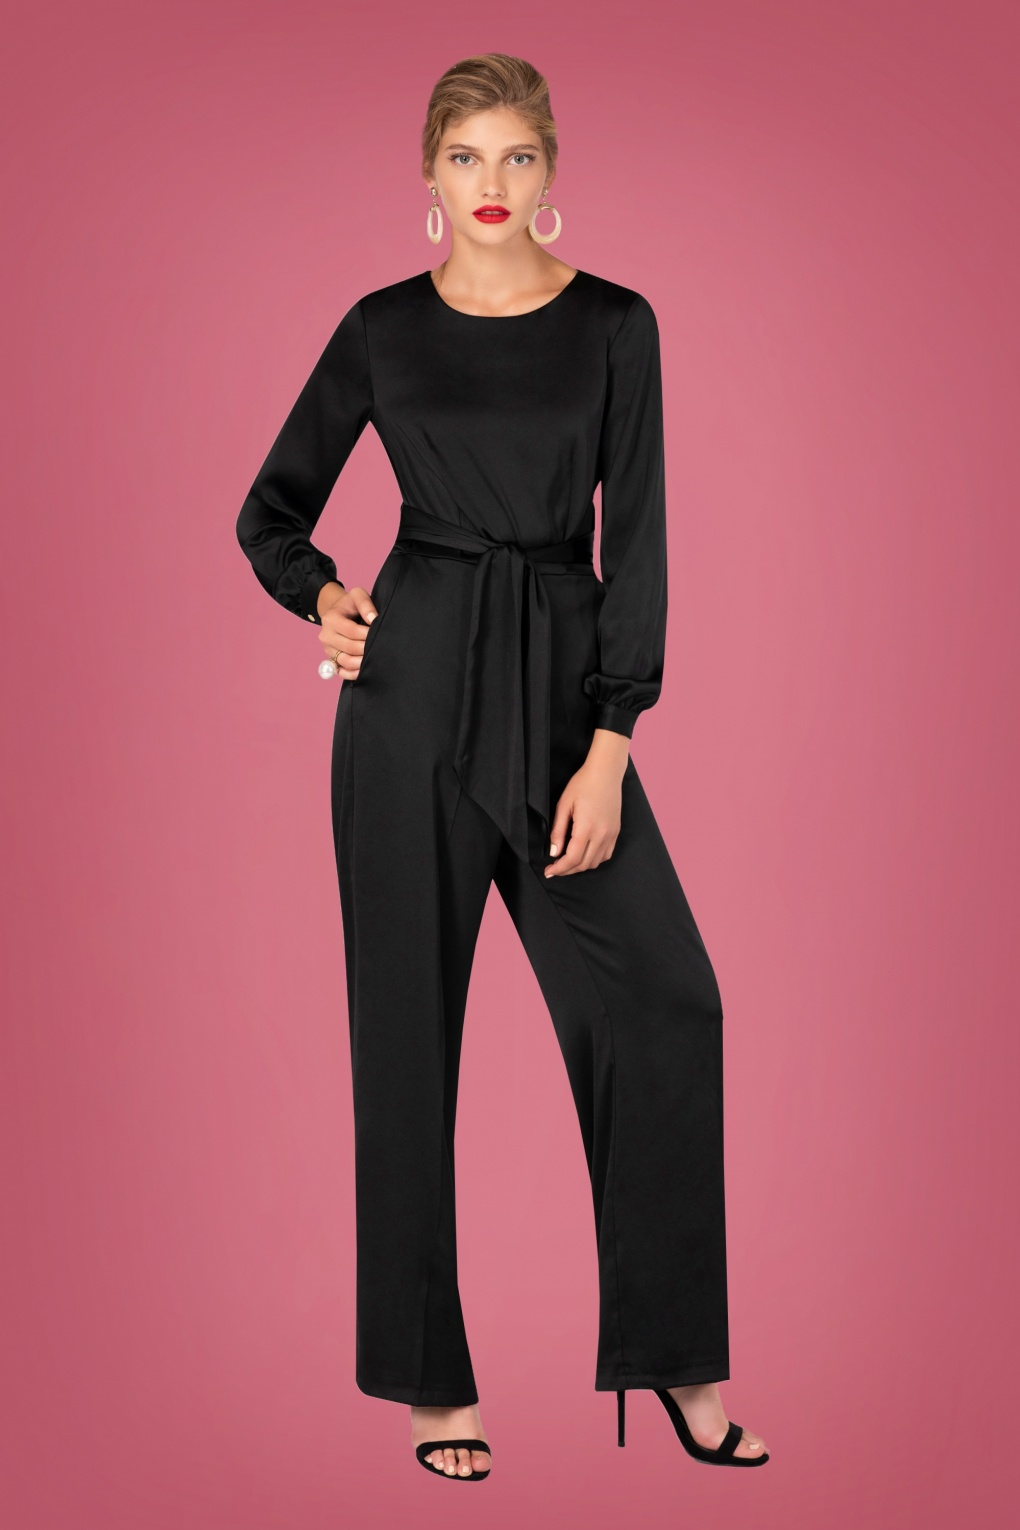 Vintage High Waisted Trousers, Sailor Pants, Jeans 70s Satin Puff Sleeve Jumpsuit in Black £114.19 AT vintagedancer.com